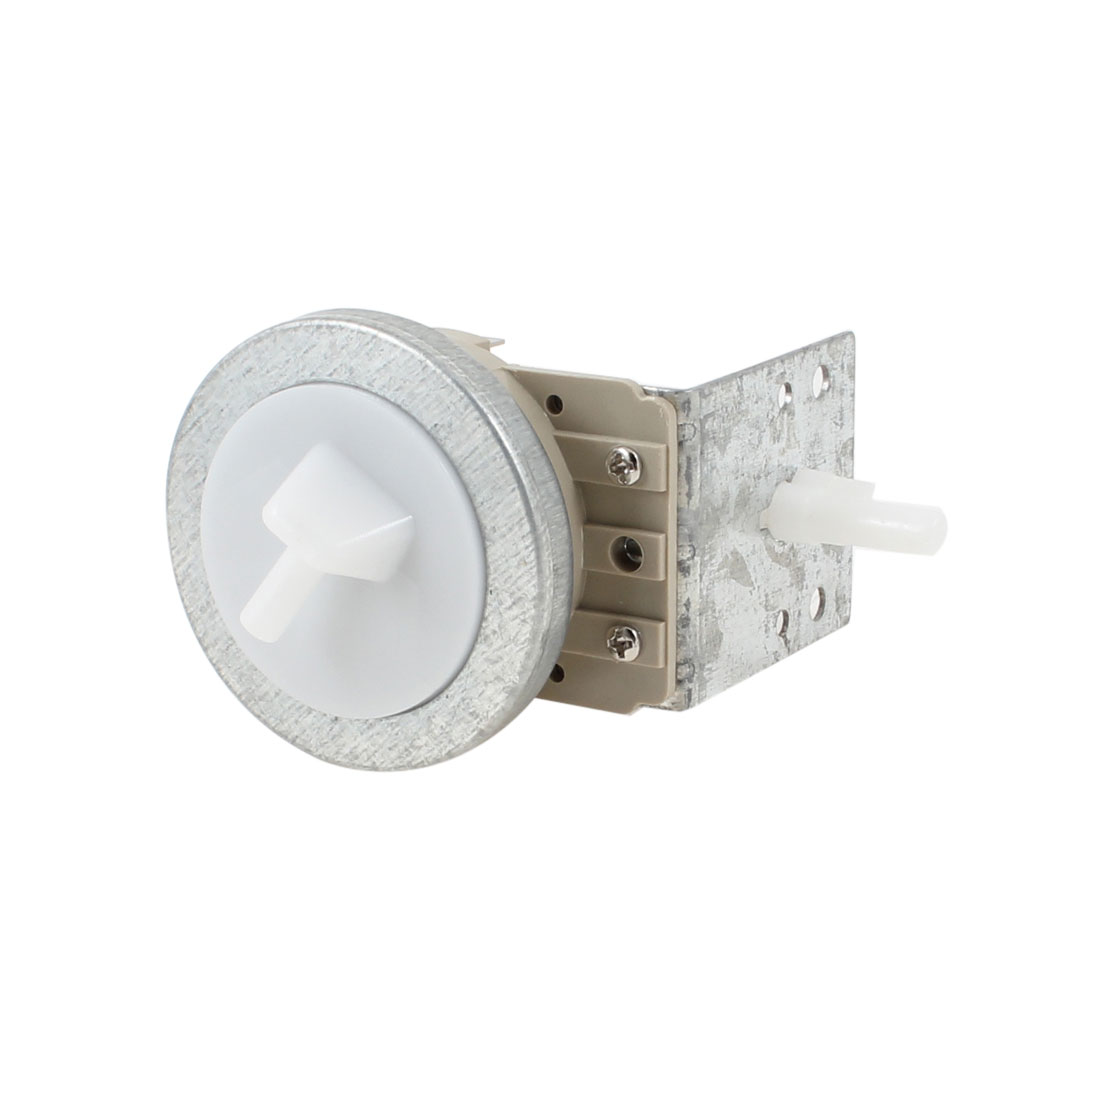 6VDC 10mA 4 Position 58mm Diameter Water Level Sensor Switch for Washing Machine